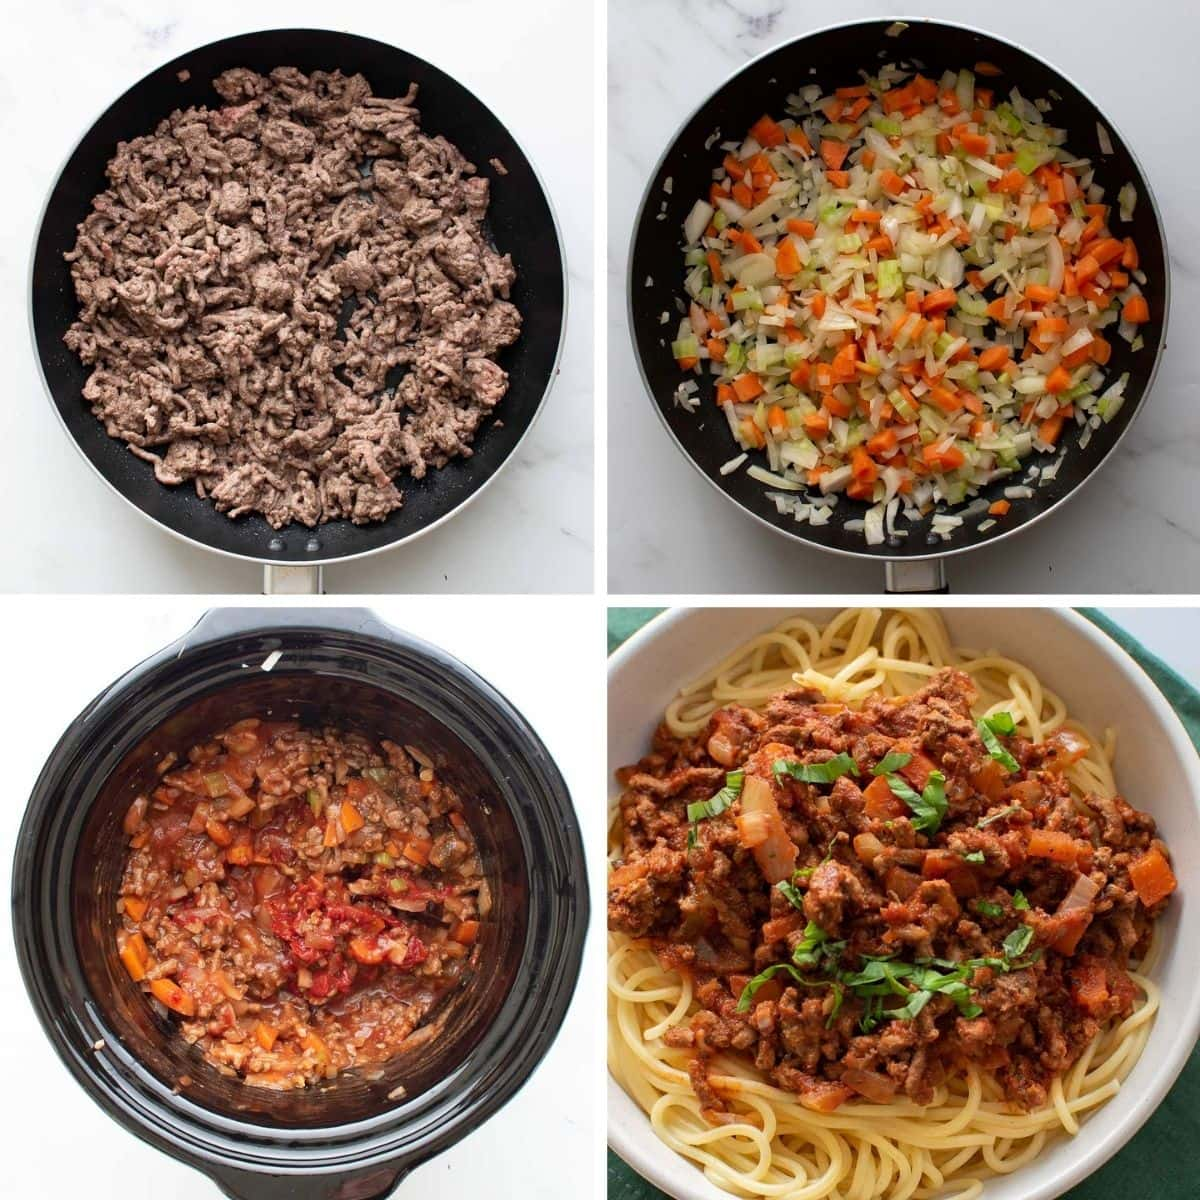 Step by step instructions for how to make bolognese sauce in the slow cooker.